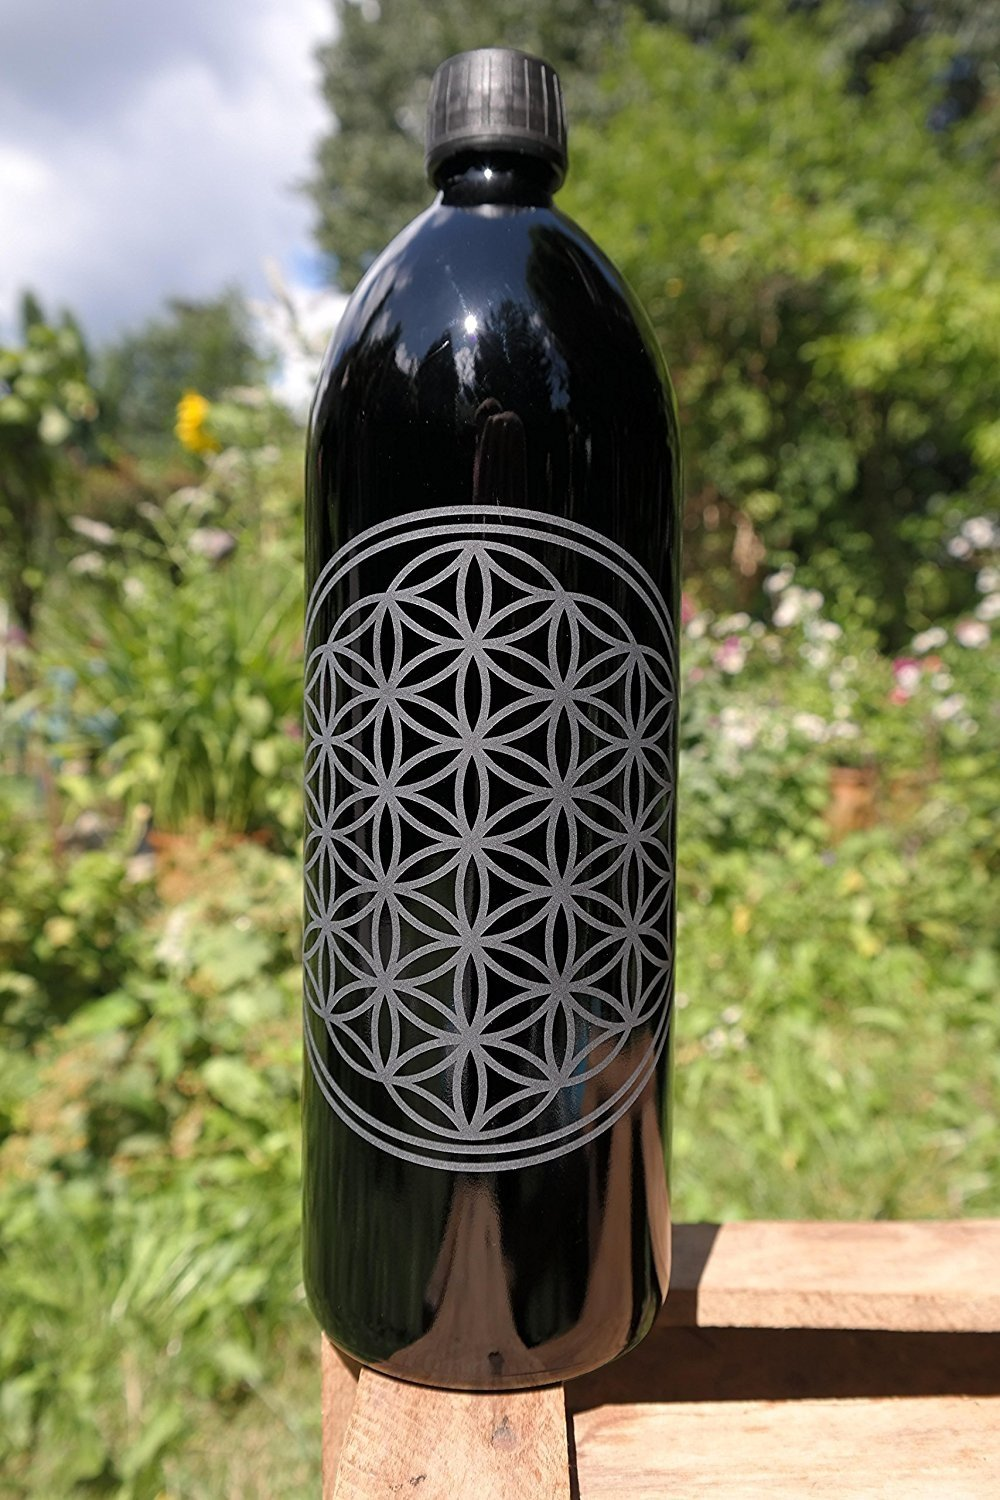 1 Litre Miron Violet Glass with the Flower of Life Andreas Lange